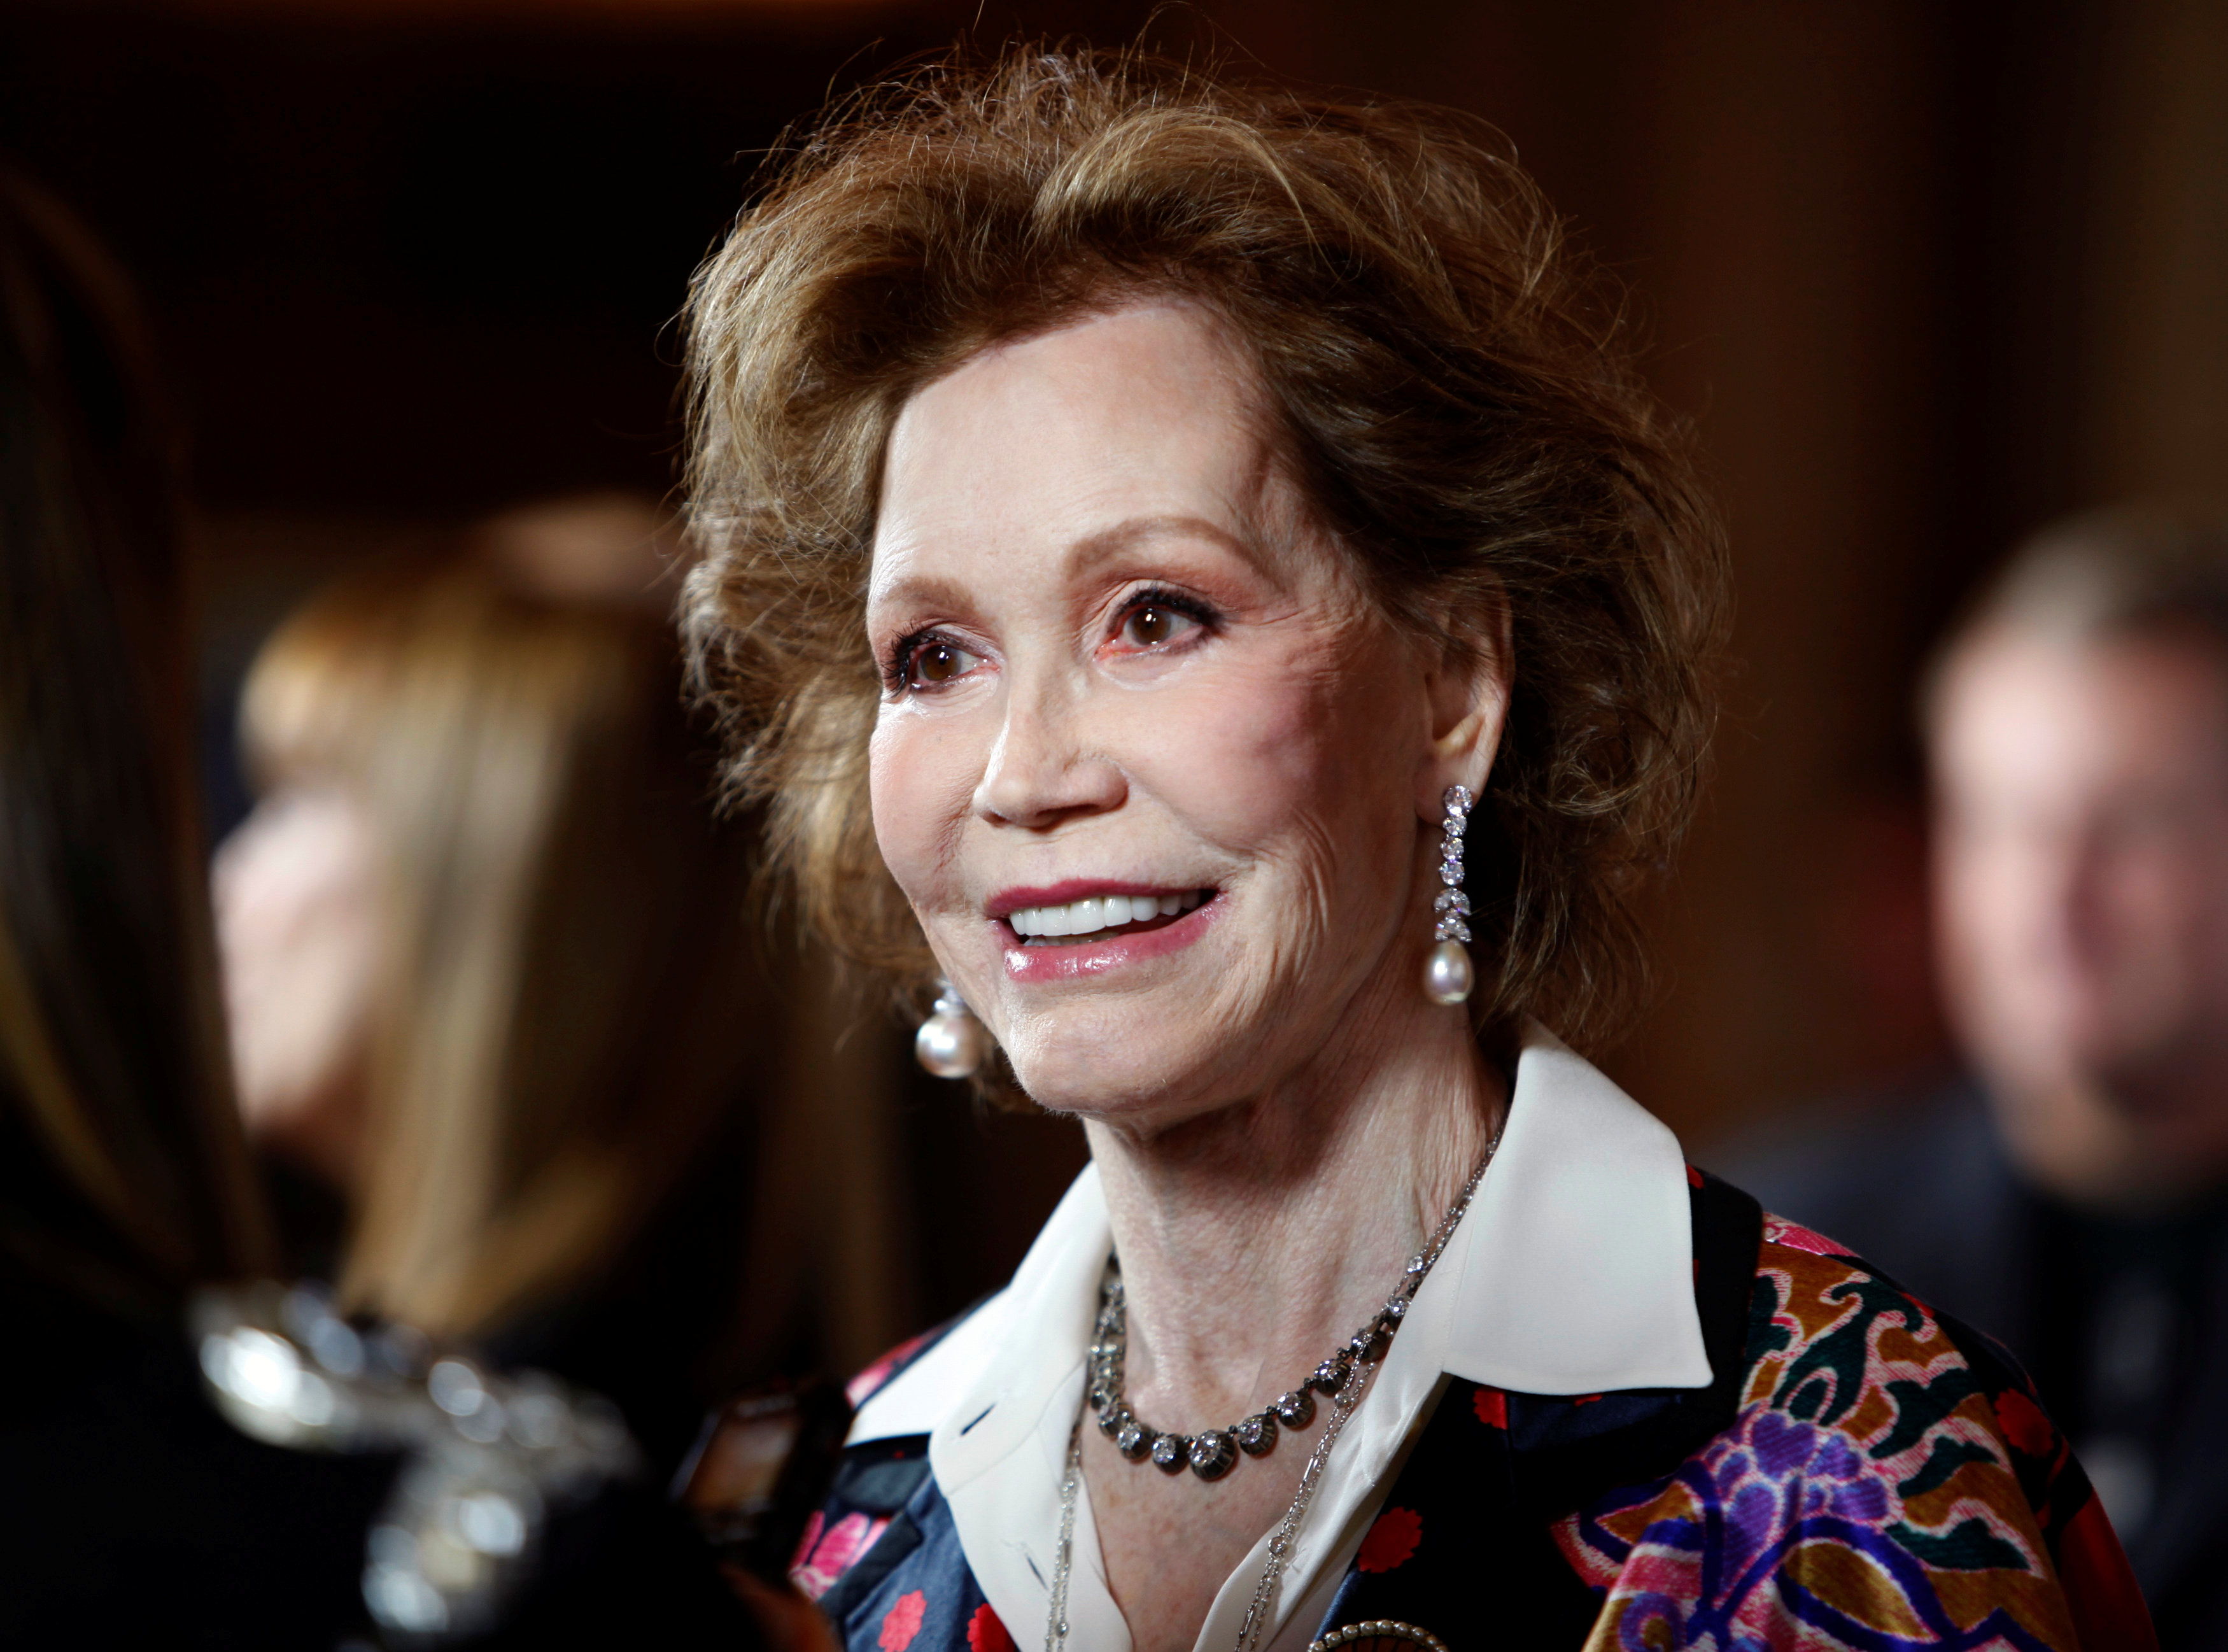 TV Icon Mary Tyler Moore Has Died at 80 Years Old